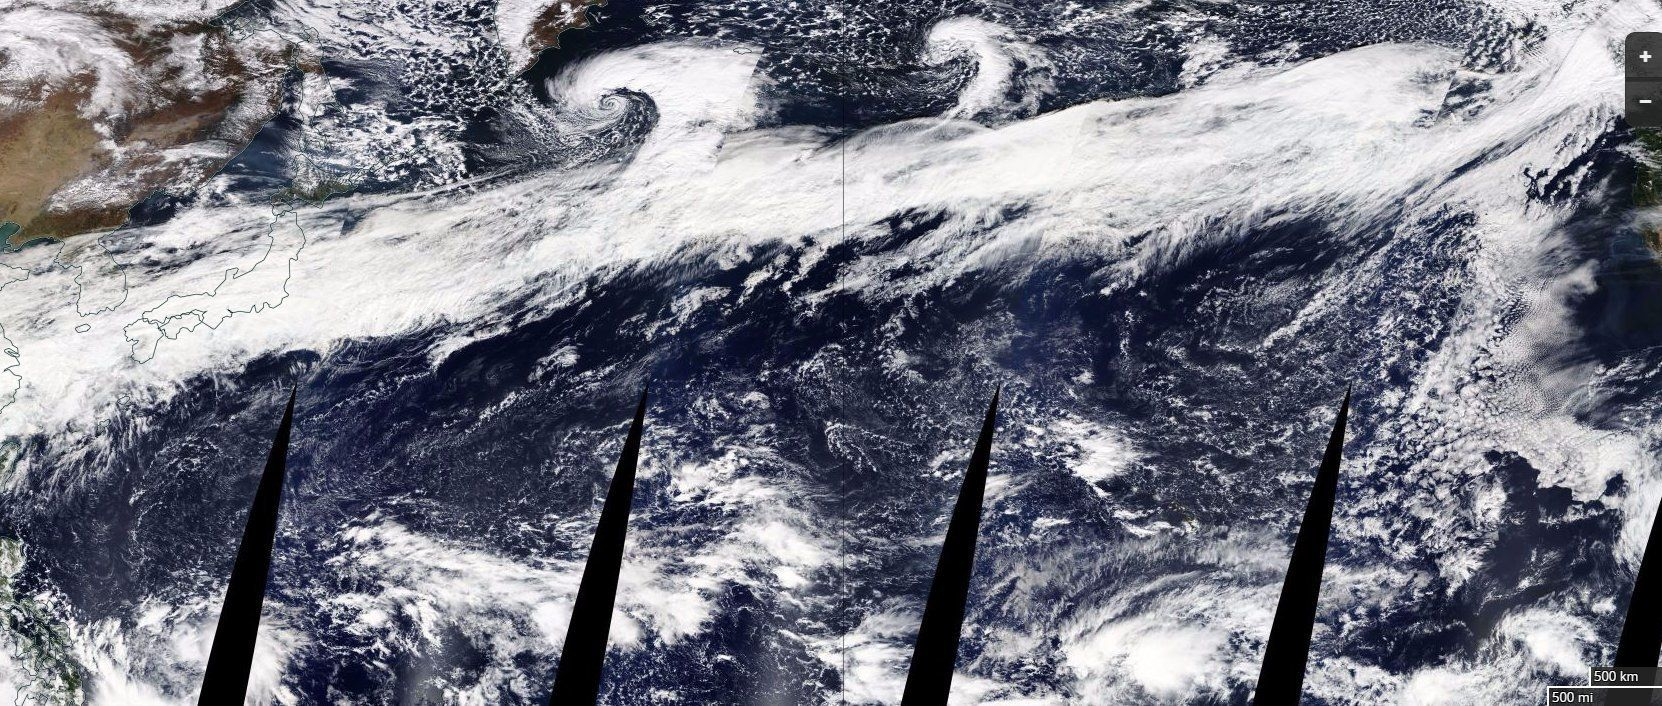 The composite image above, released by NASA, shows a large atmospheric river stretching from China on the left to the coast o